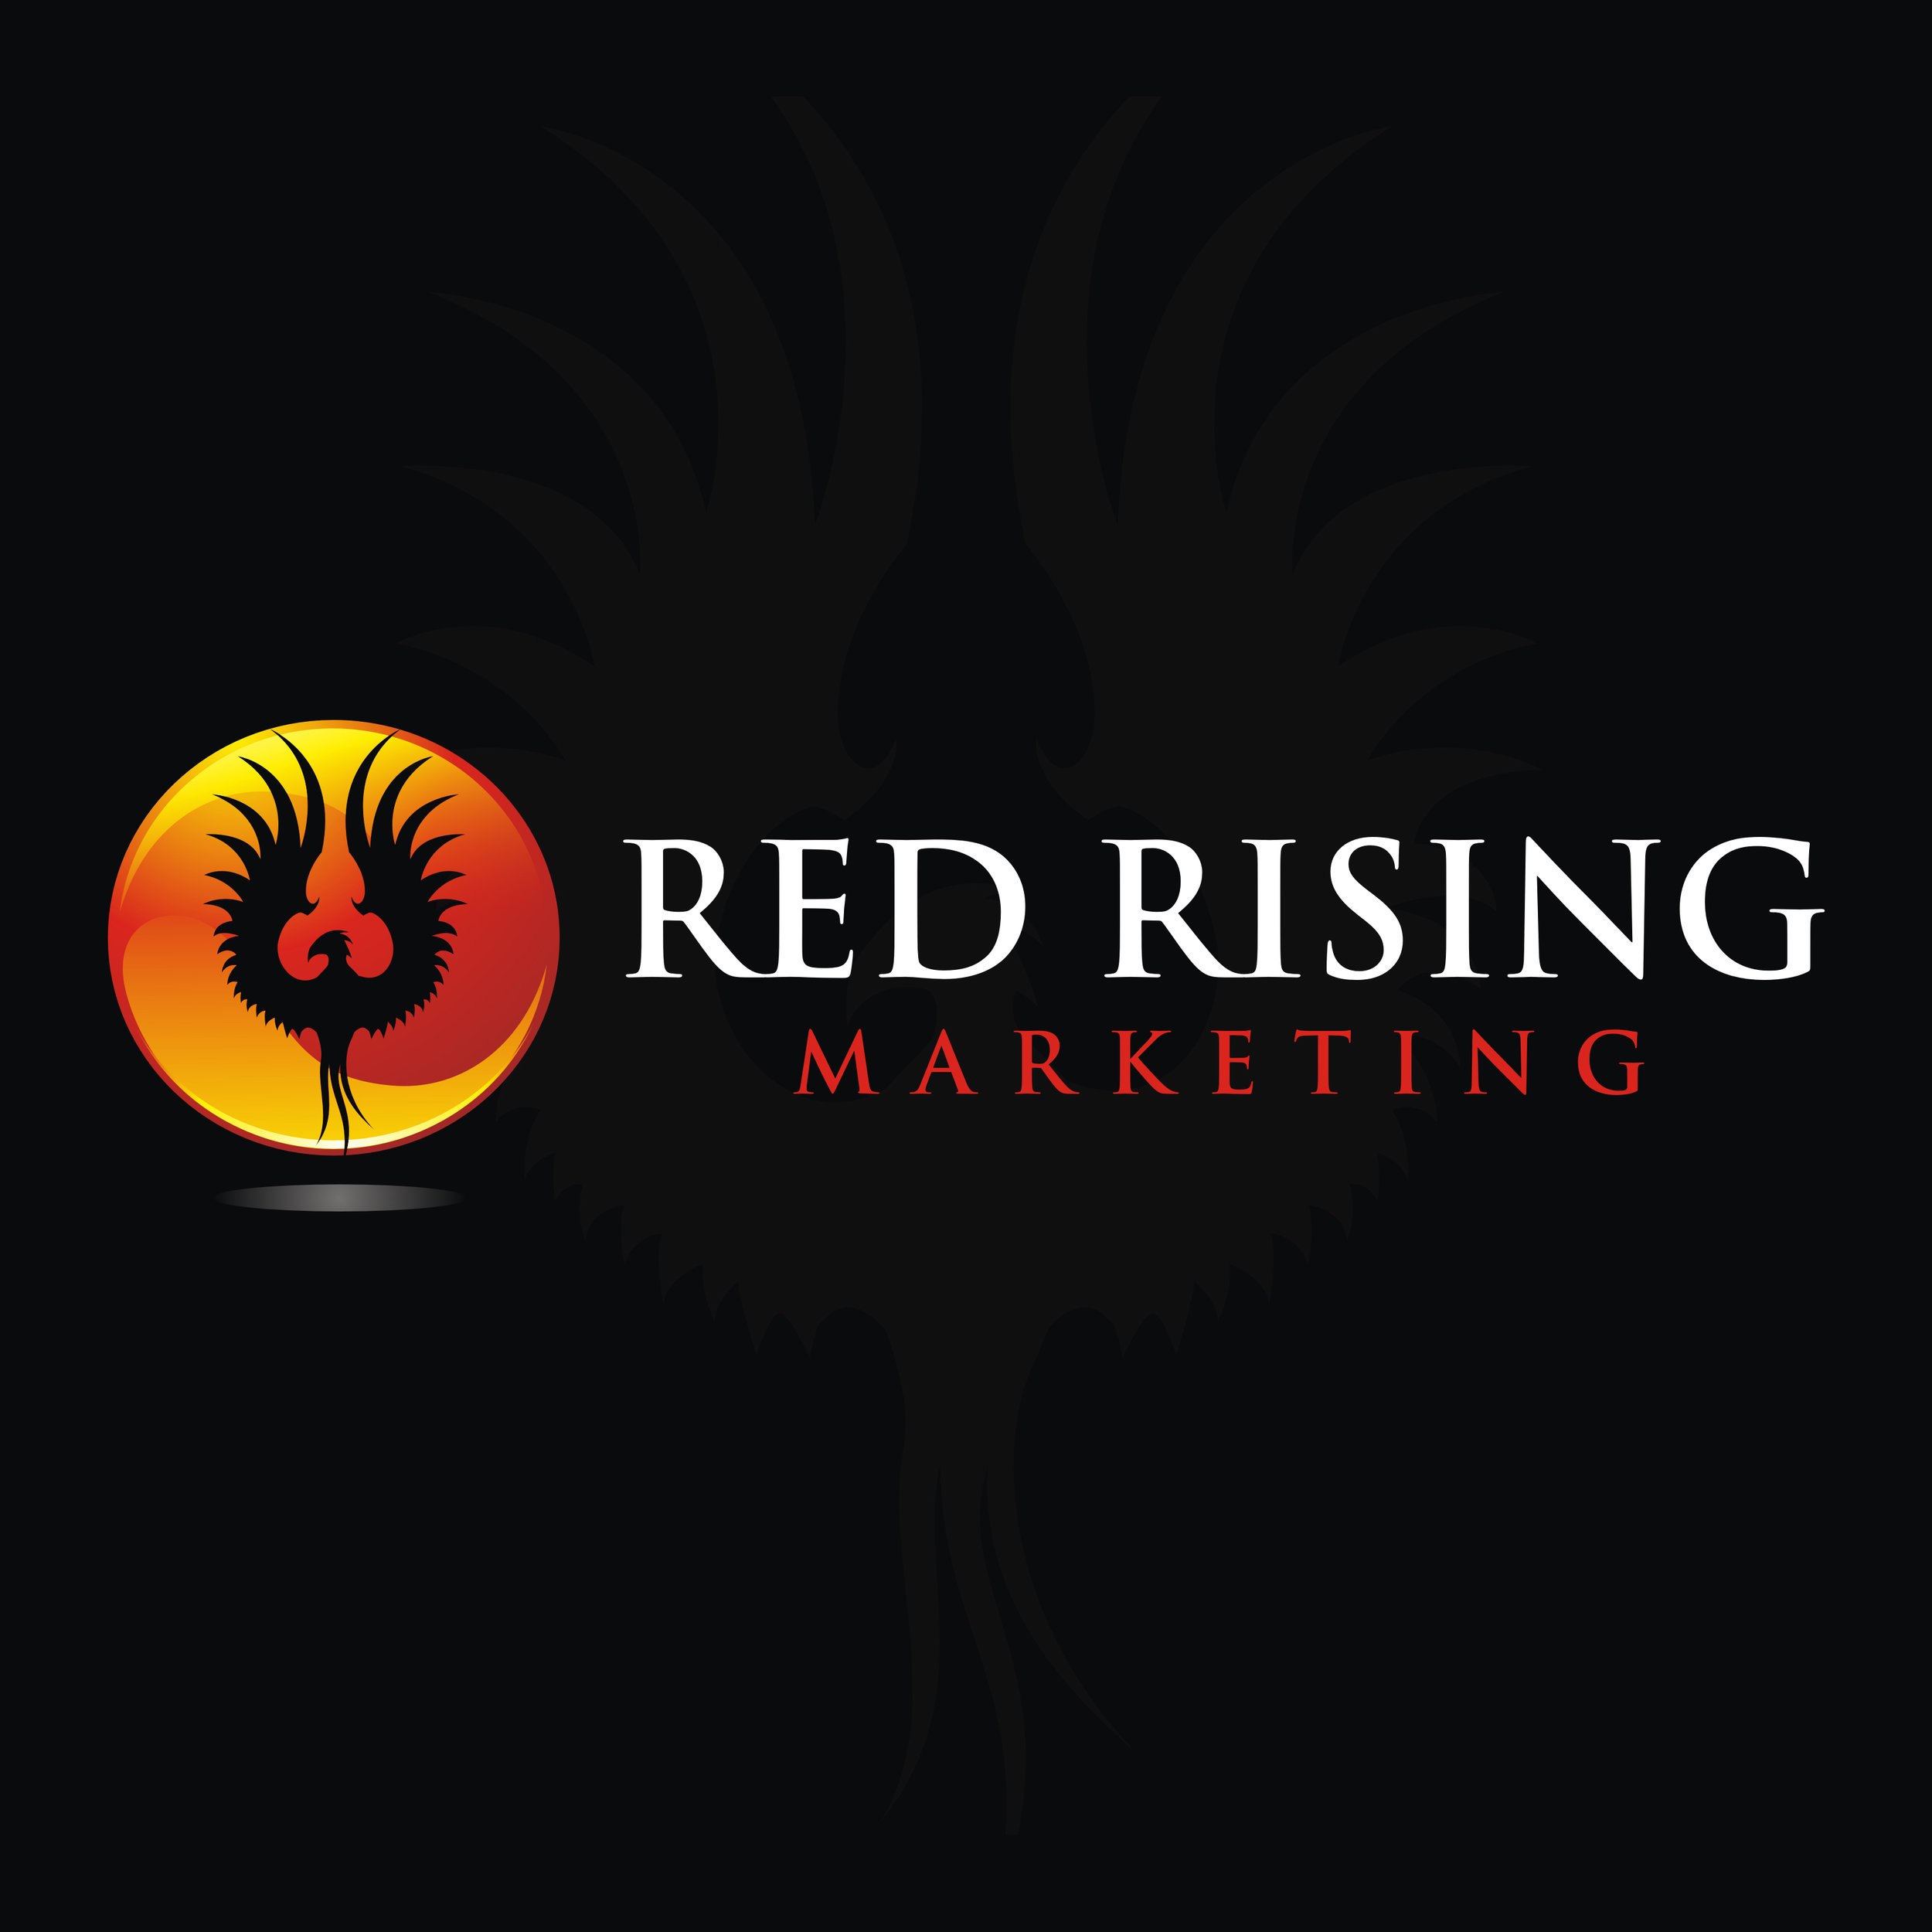 Red Rising Marketing